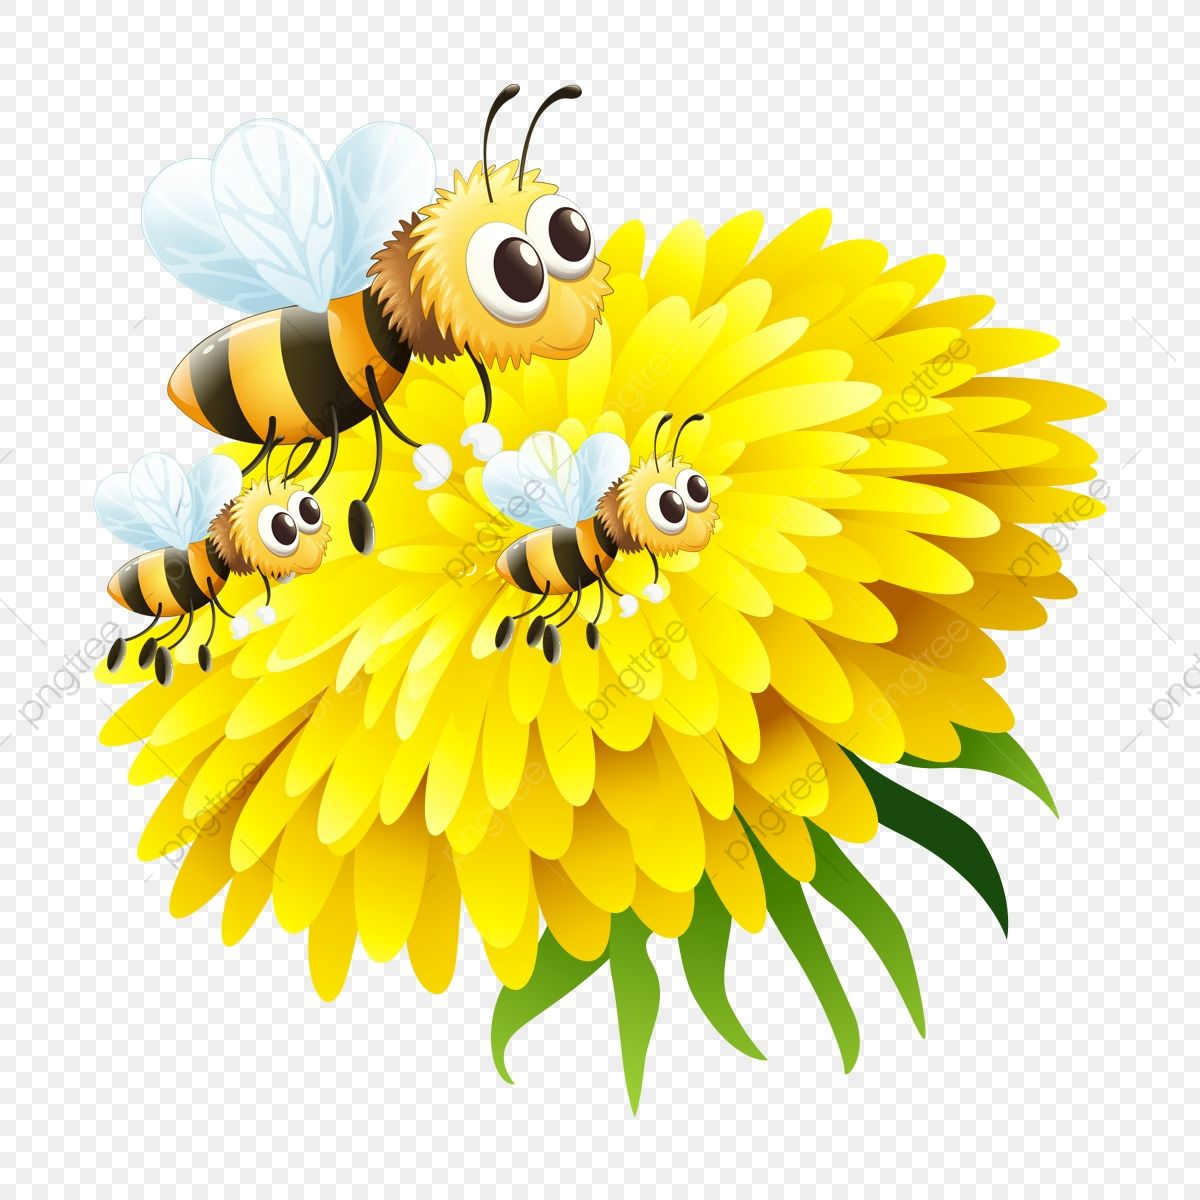 Bee In Flower Bee Flower Png Transparent Clipart Image And Psd File For Free Download Flower Illustration Bee On Flower Flower Clipart